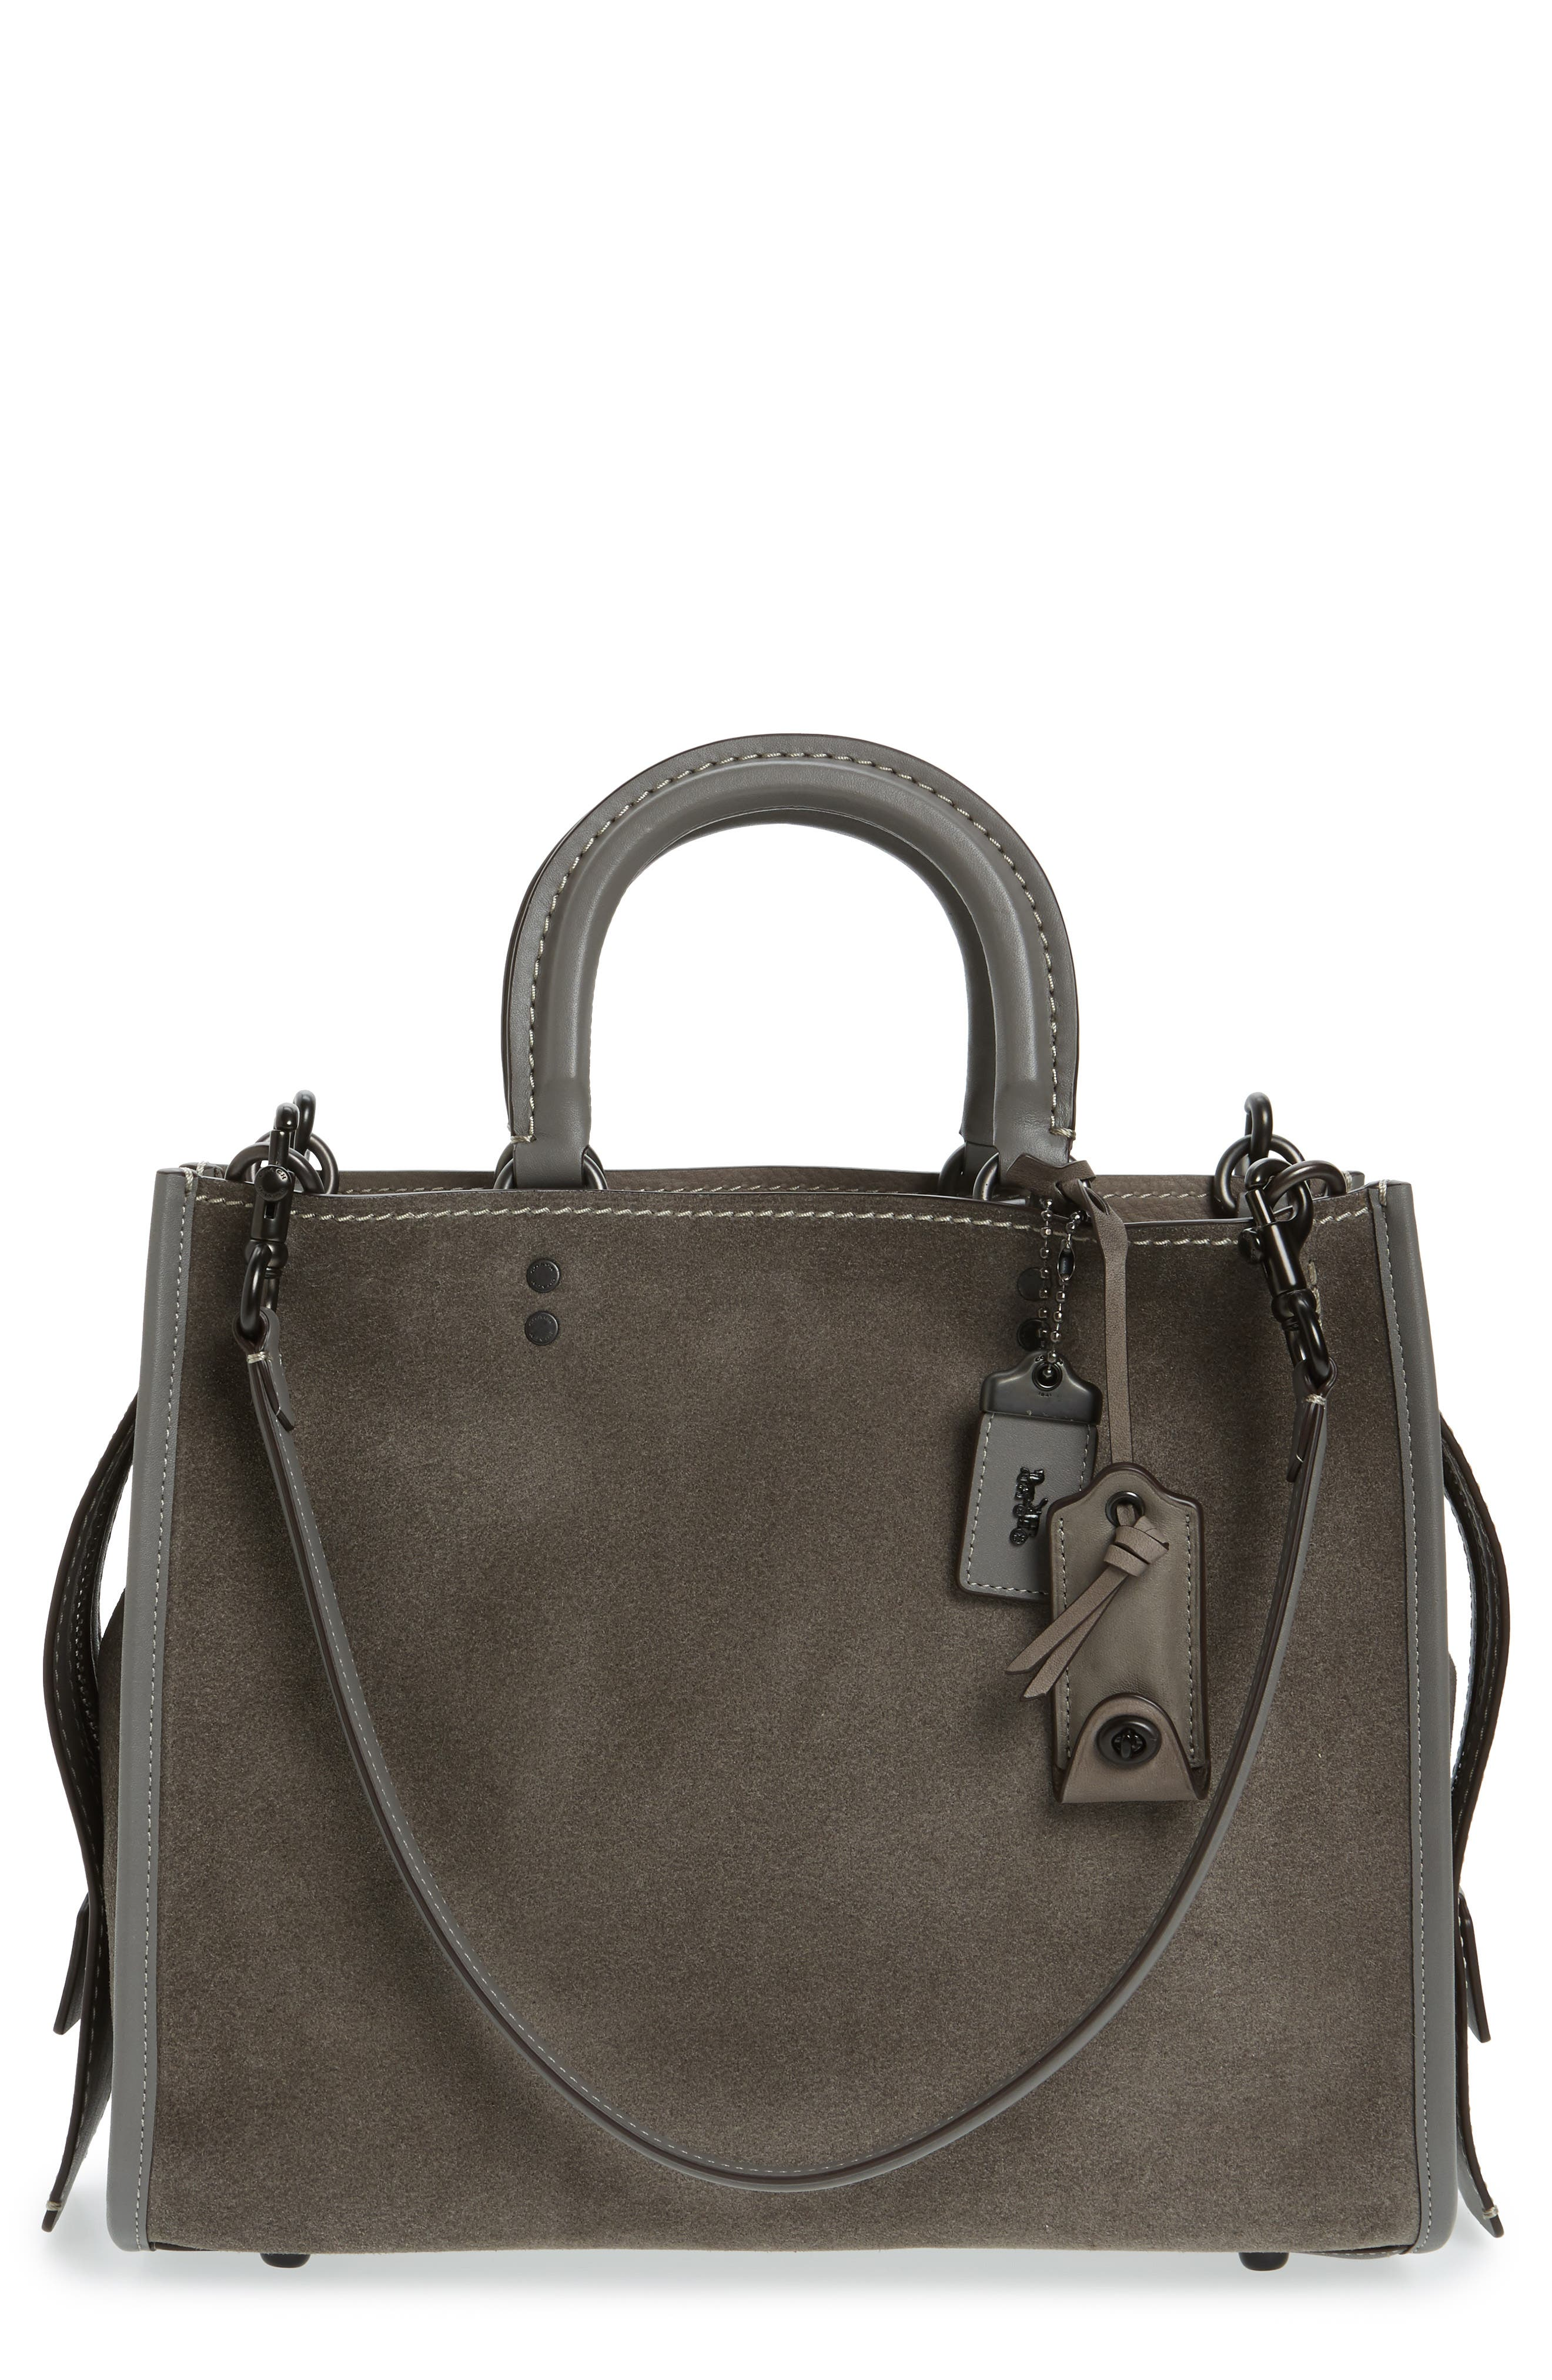 'Rogue' Leather Satchel,                             Main thumbnail 1, color,                             030